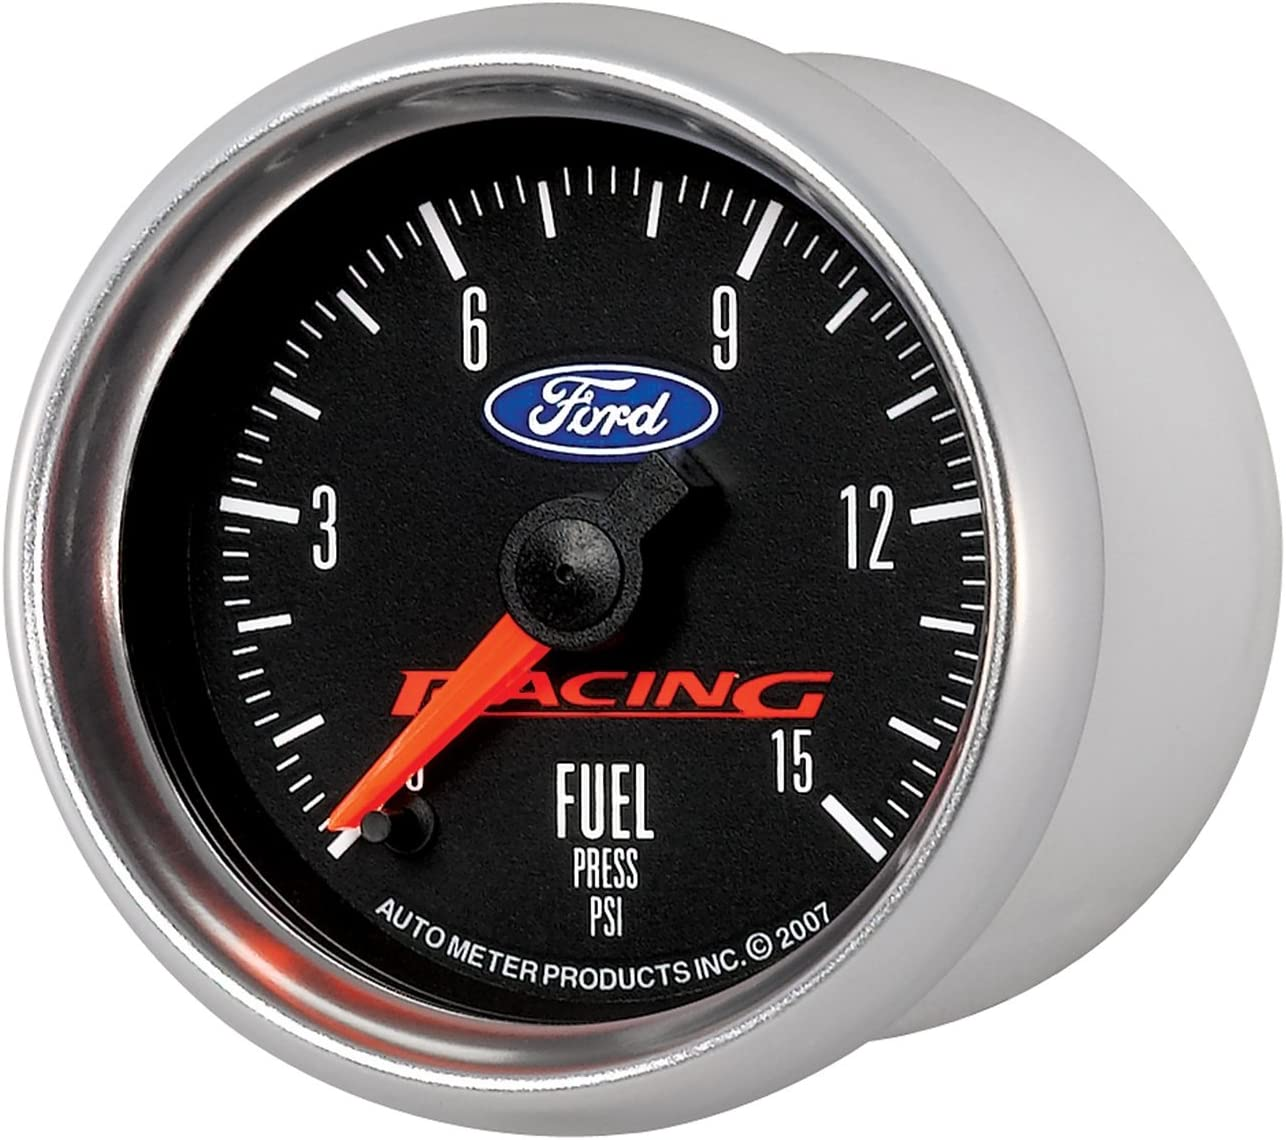 Auto Meter 880107 2-1//16 0-15 PSI Fuel Pressure Gauge for Ford Racing